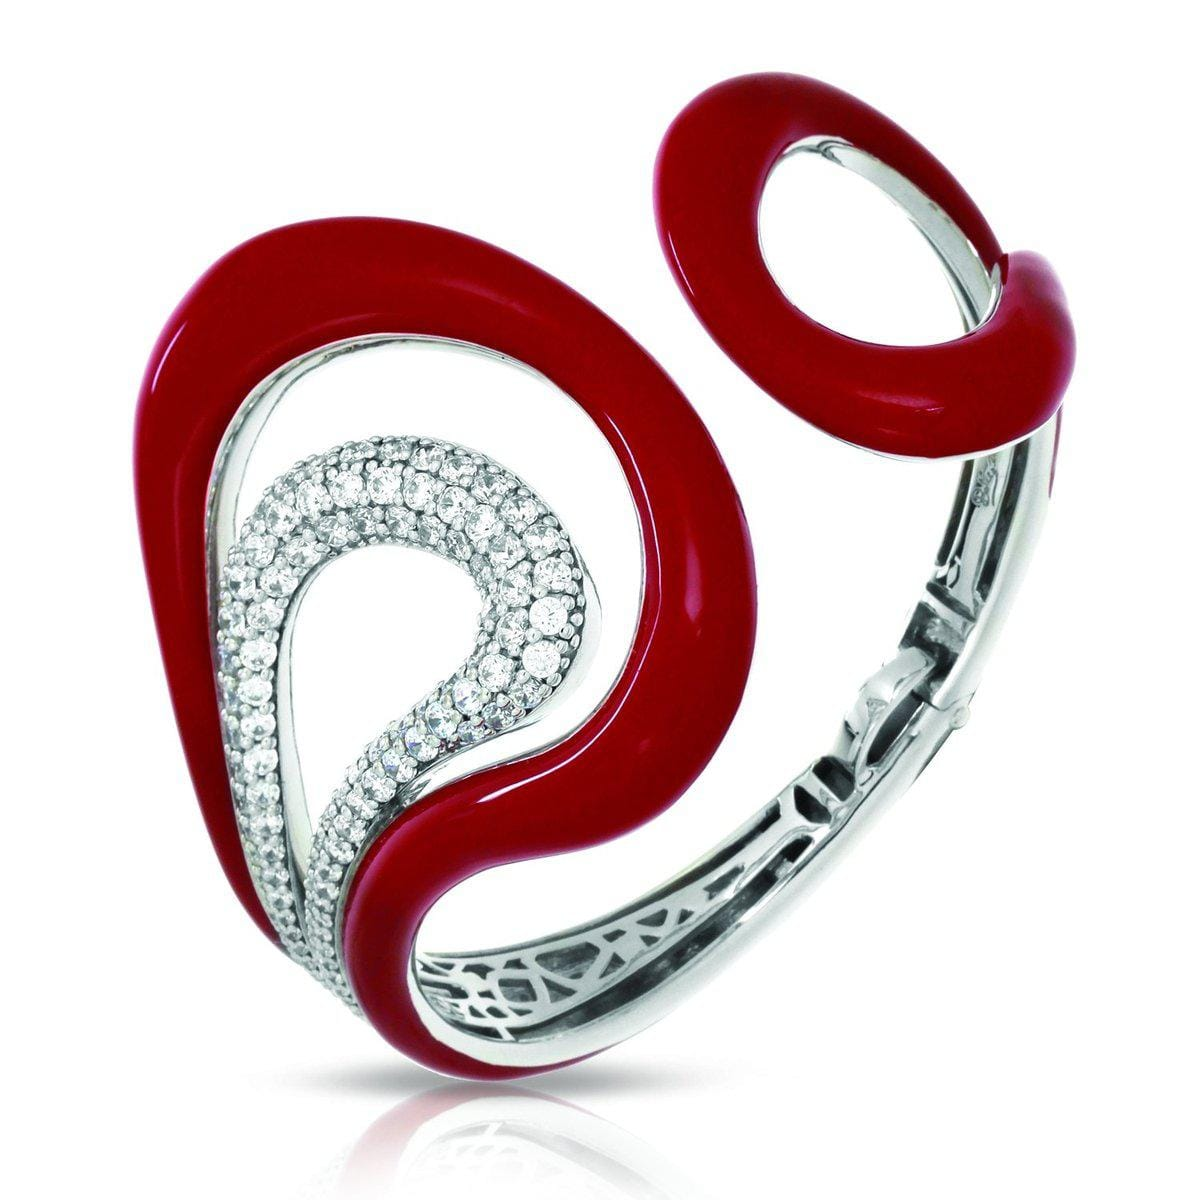 Vapeur Red Bangle-Belle Etoile-Renee Taylor Gallery